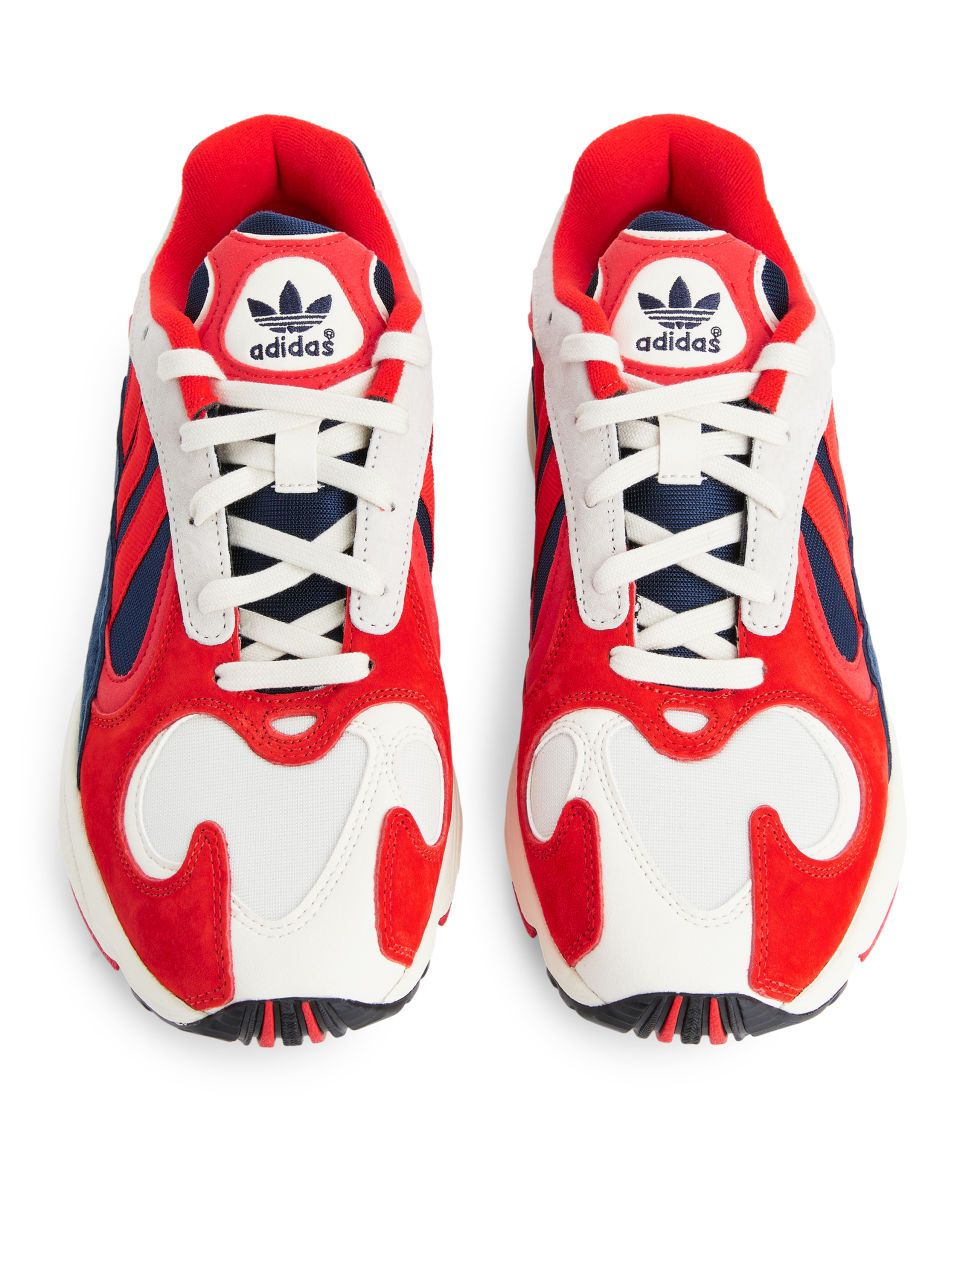 adidas Yung 1 Trainers in 2019   Red shoes, Arket, Adidas brand